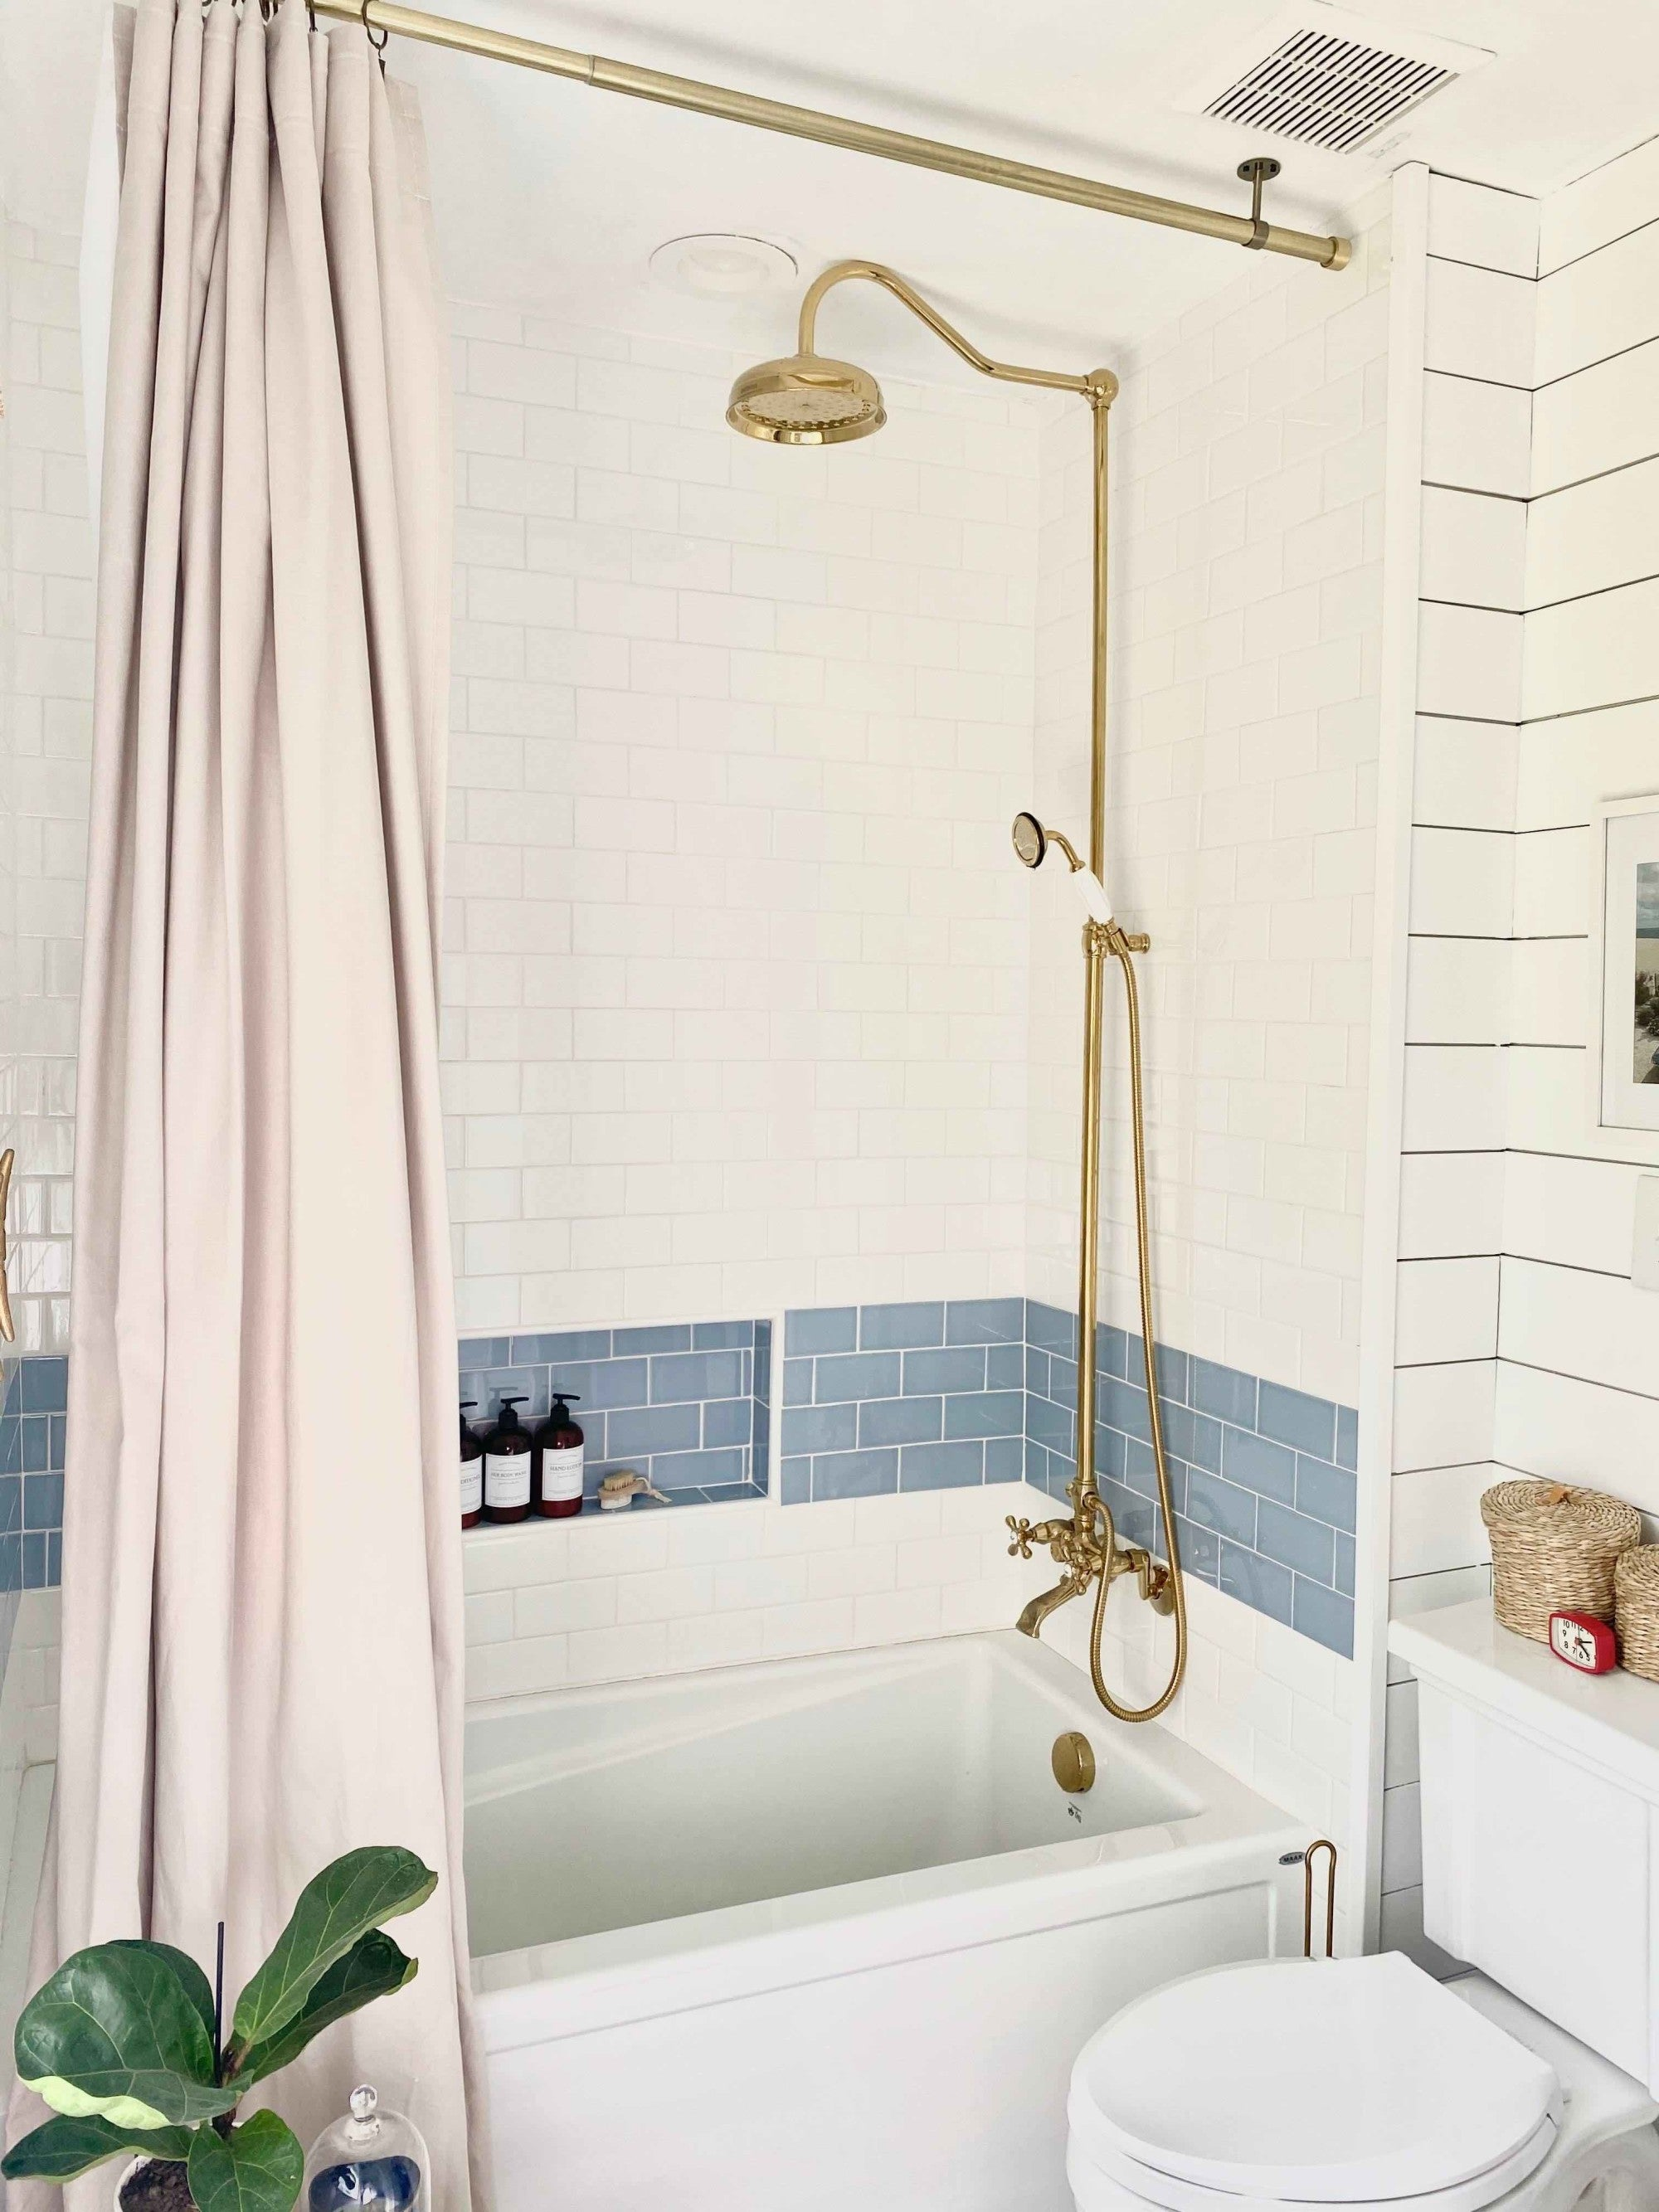 This kids bathroom took on a nautical theme with vintage fixtures including a gold shower head and painted sink. The blue and white tile is complemented by horizontal shiplap painted with Clare's Fresh Kicks white paint.